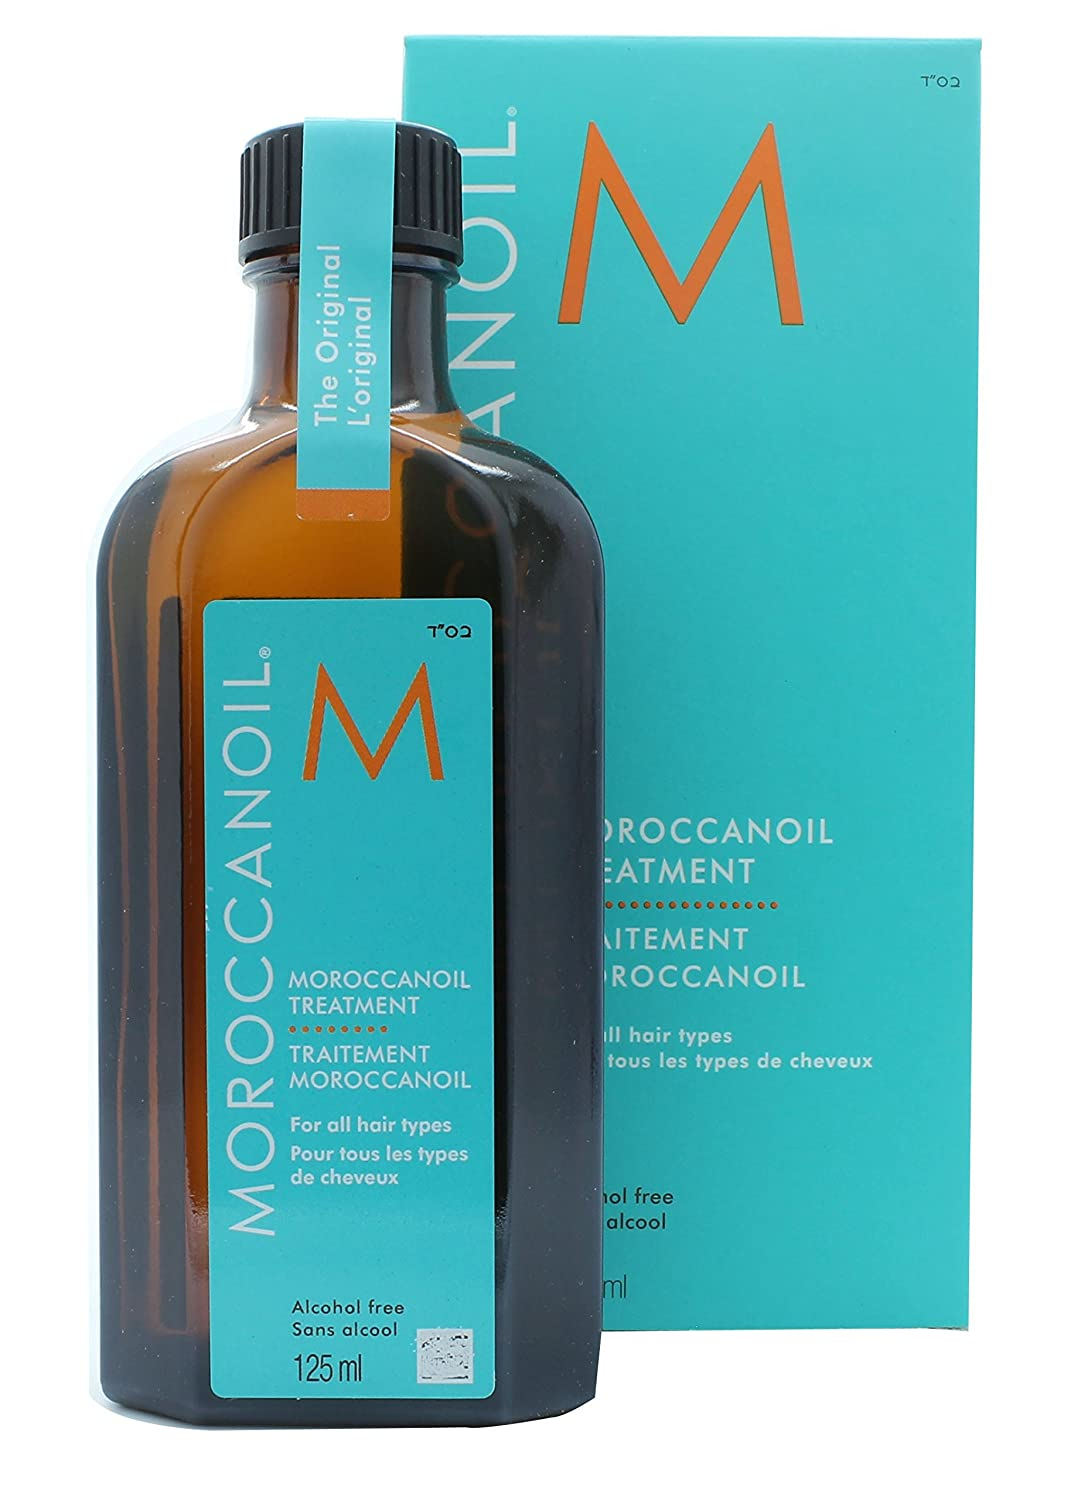 Moroccanoil Treatment for Hair Special Edition Pump, 125 mL/4.23 oz. 701191897911